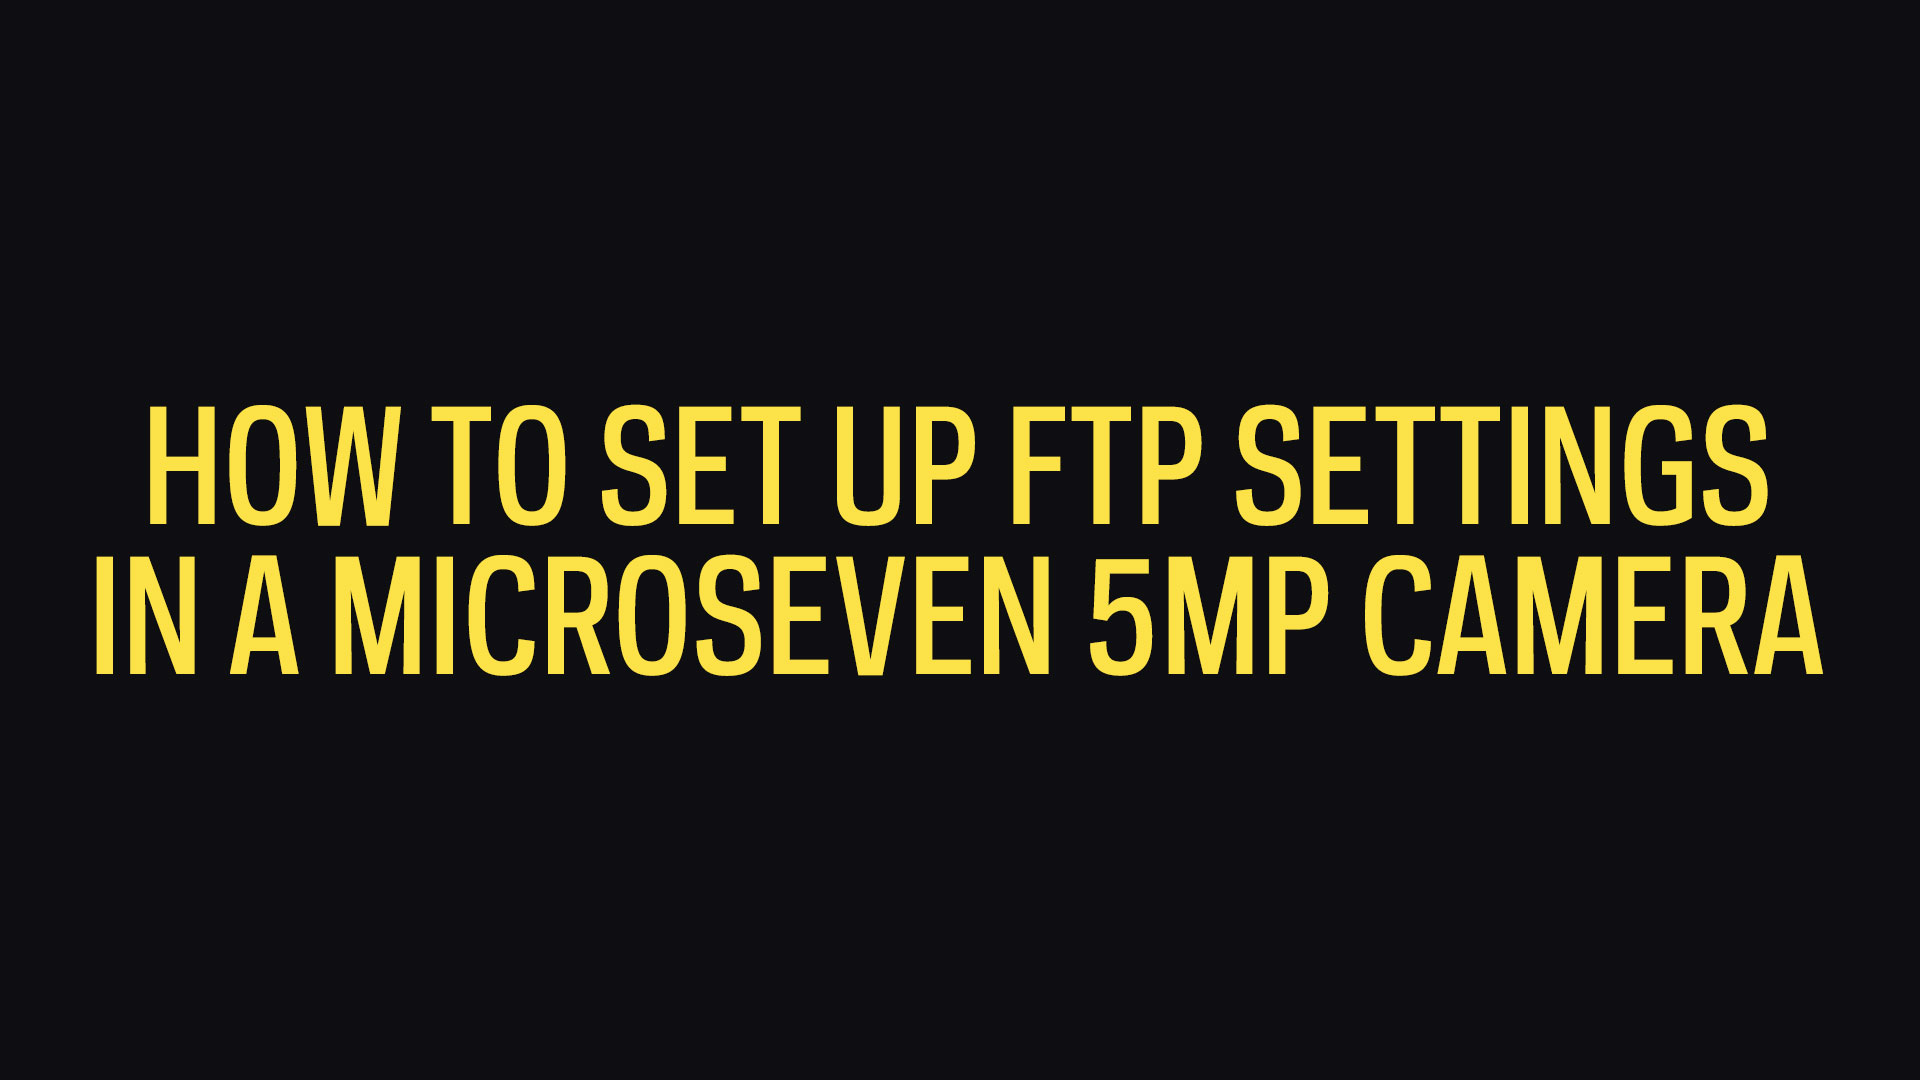 How To Set Up FTP Settings In Microseven 5MP Camera